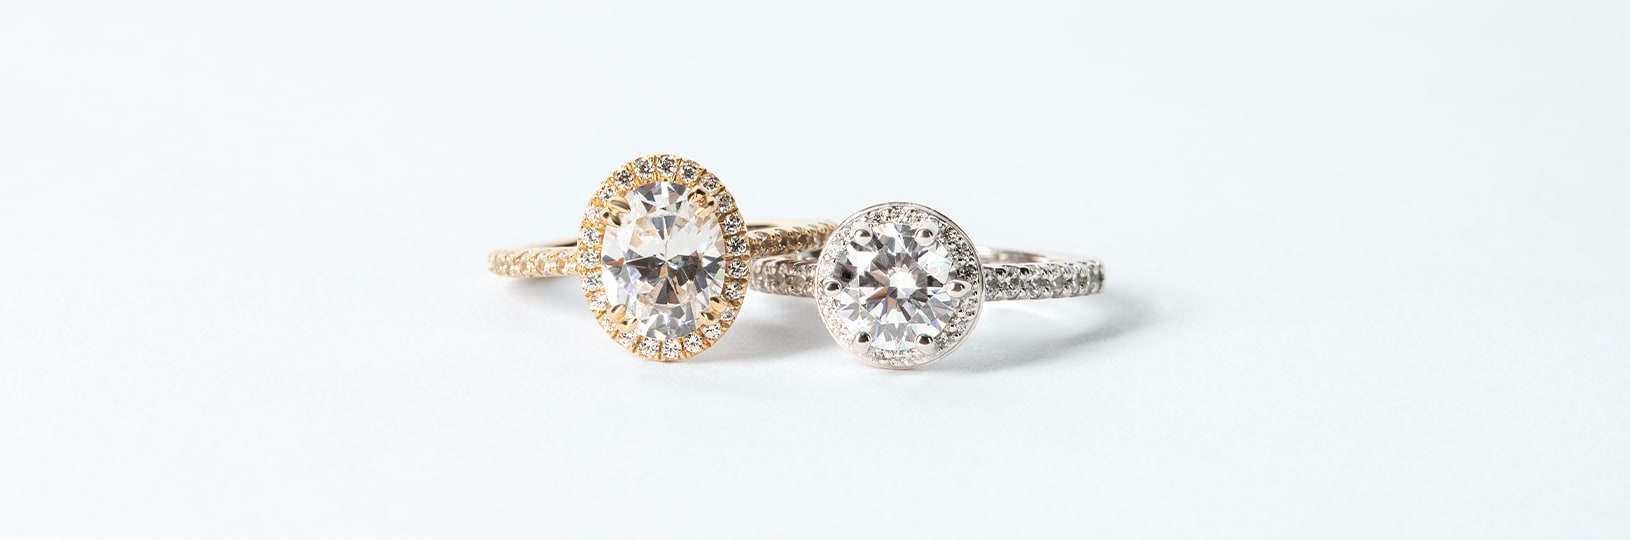 An oval cut simulated diamond and round cut simulated diamond pictured side by side